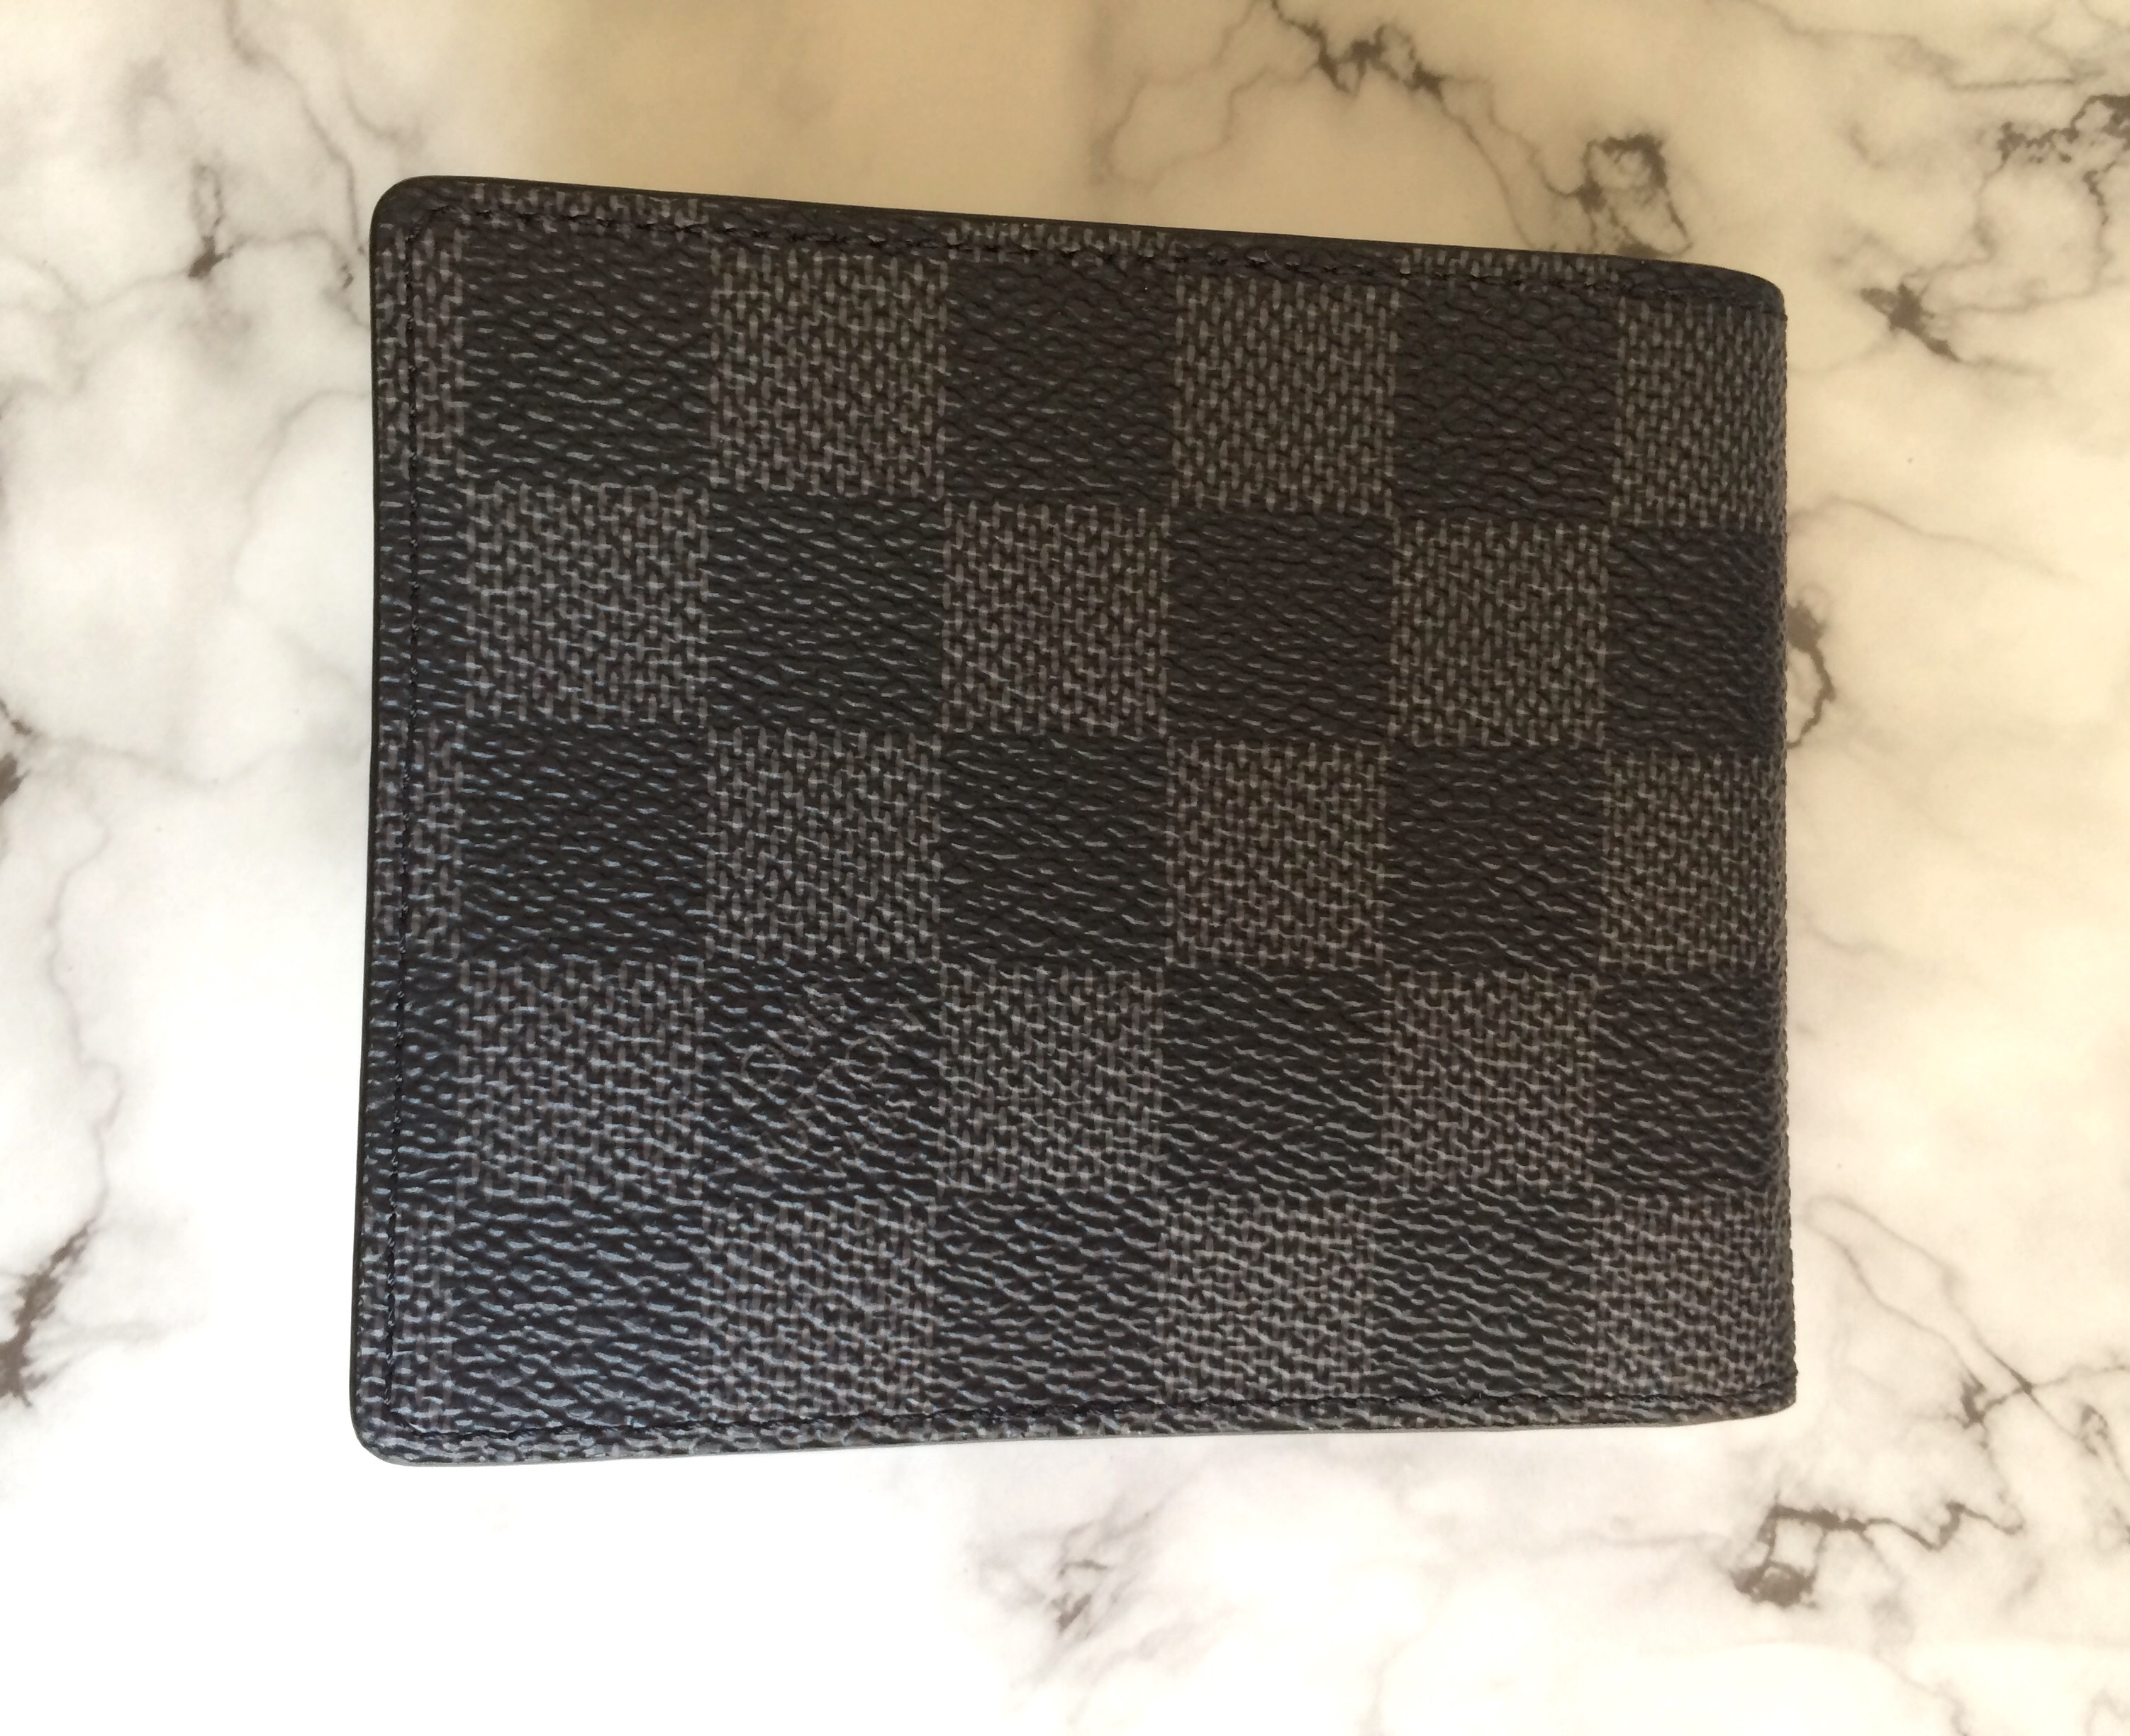 【LOUIS VUITTON】ダミエグラフィット マネークリップ付 財布